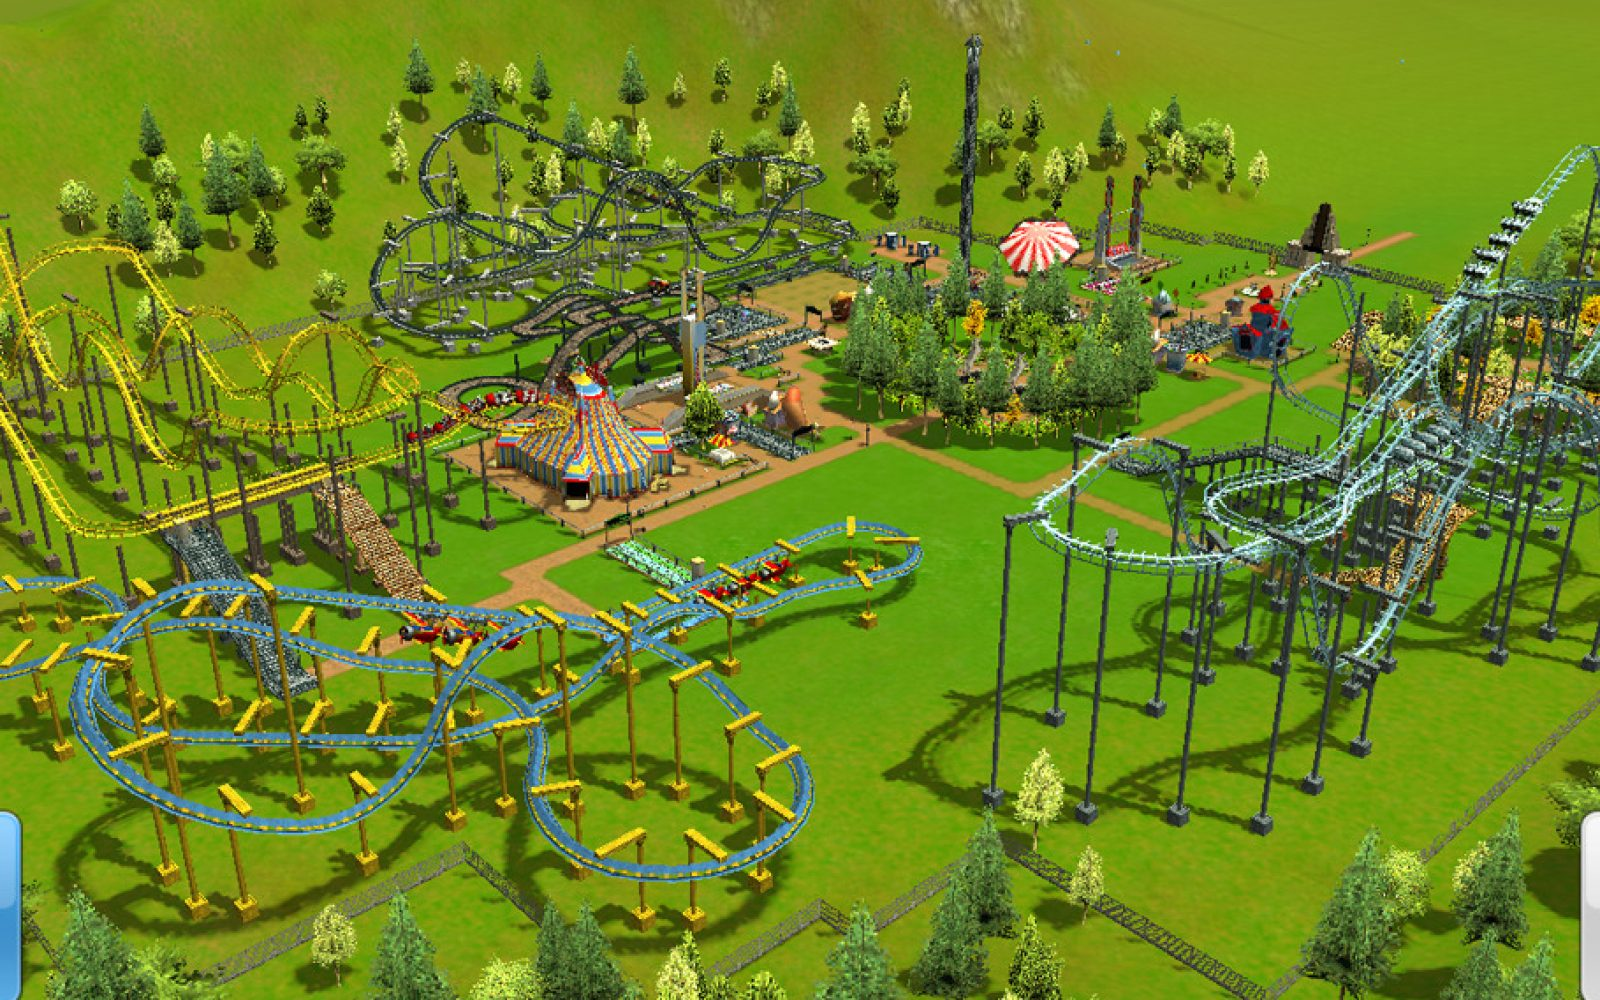 Roller Coaster Tycoon For Mac App - lastchancehe's blog